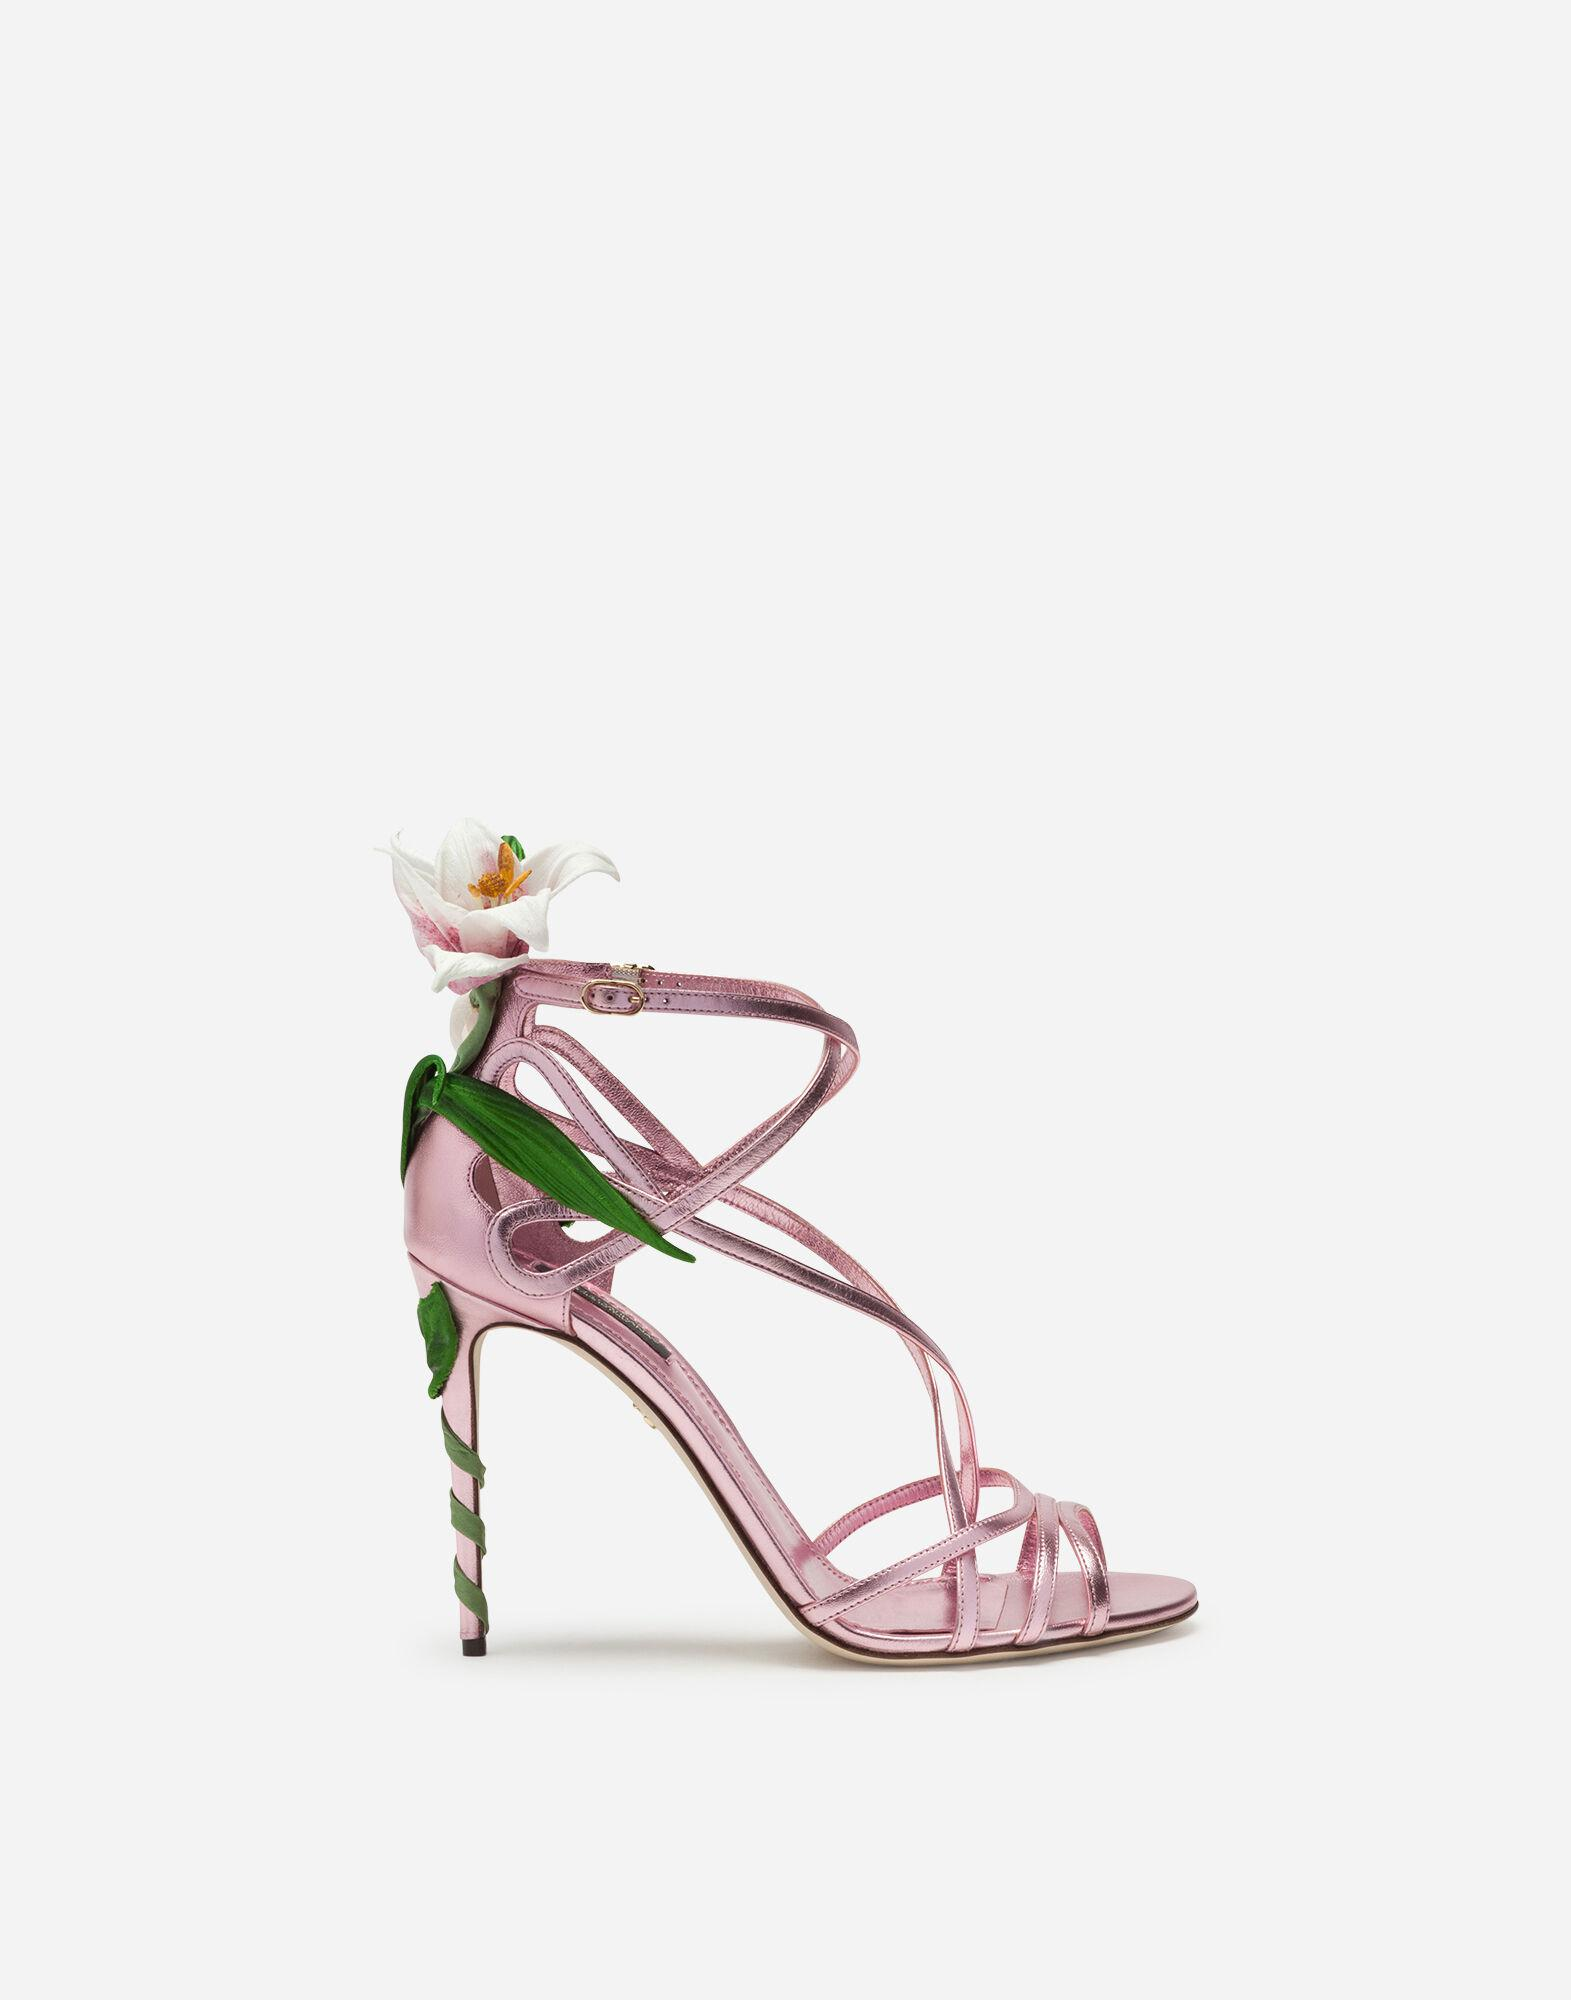 Mordore nappa sandals with lily embroidery